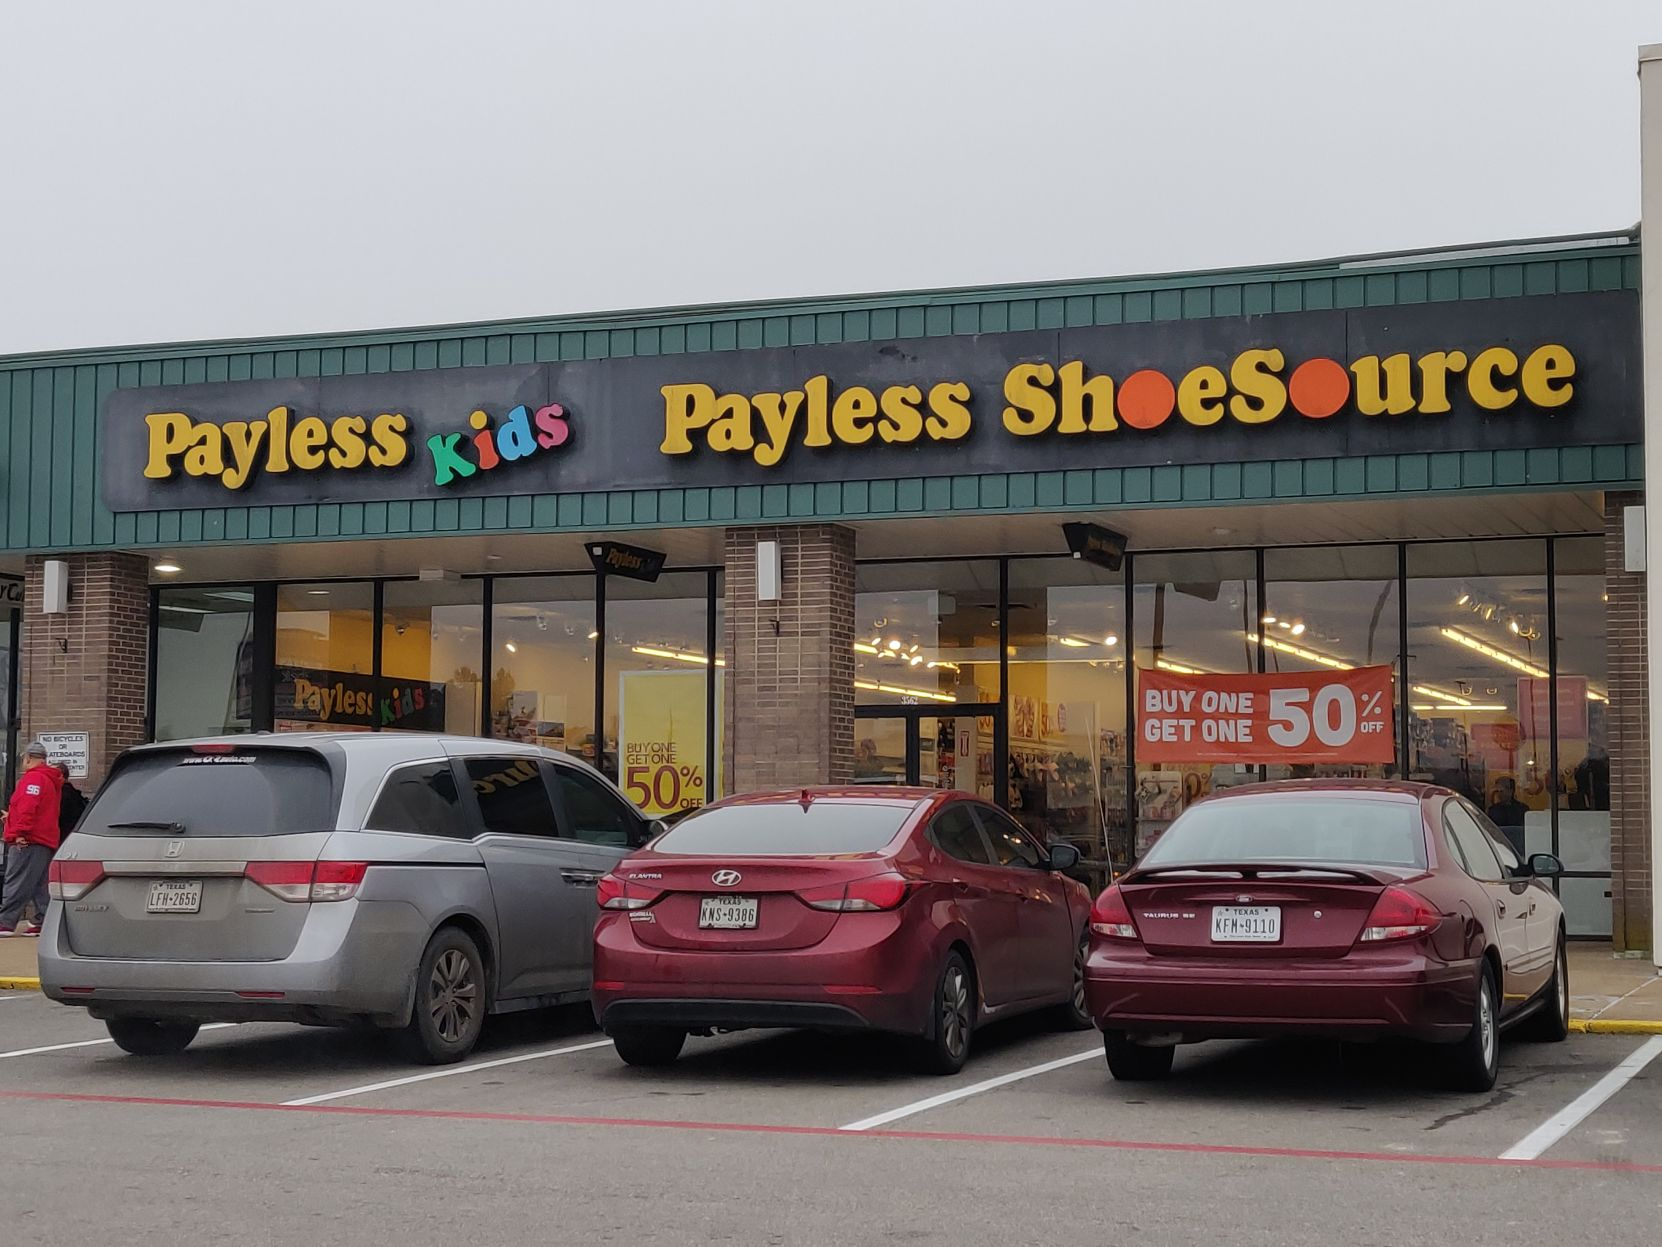 Paris Payless ShoeSource in countdown